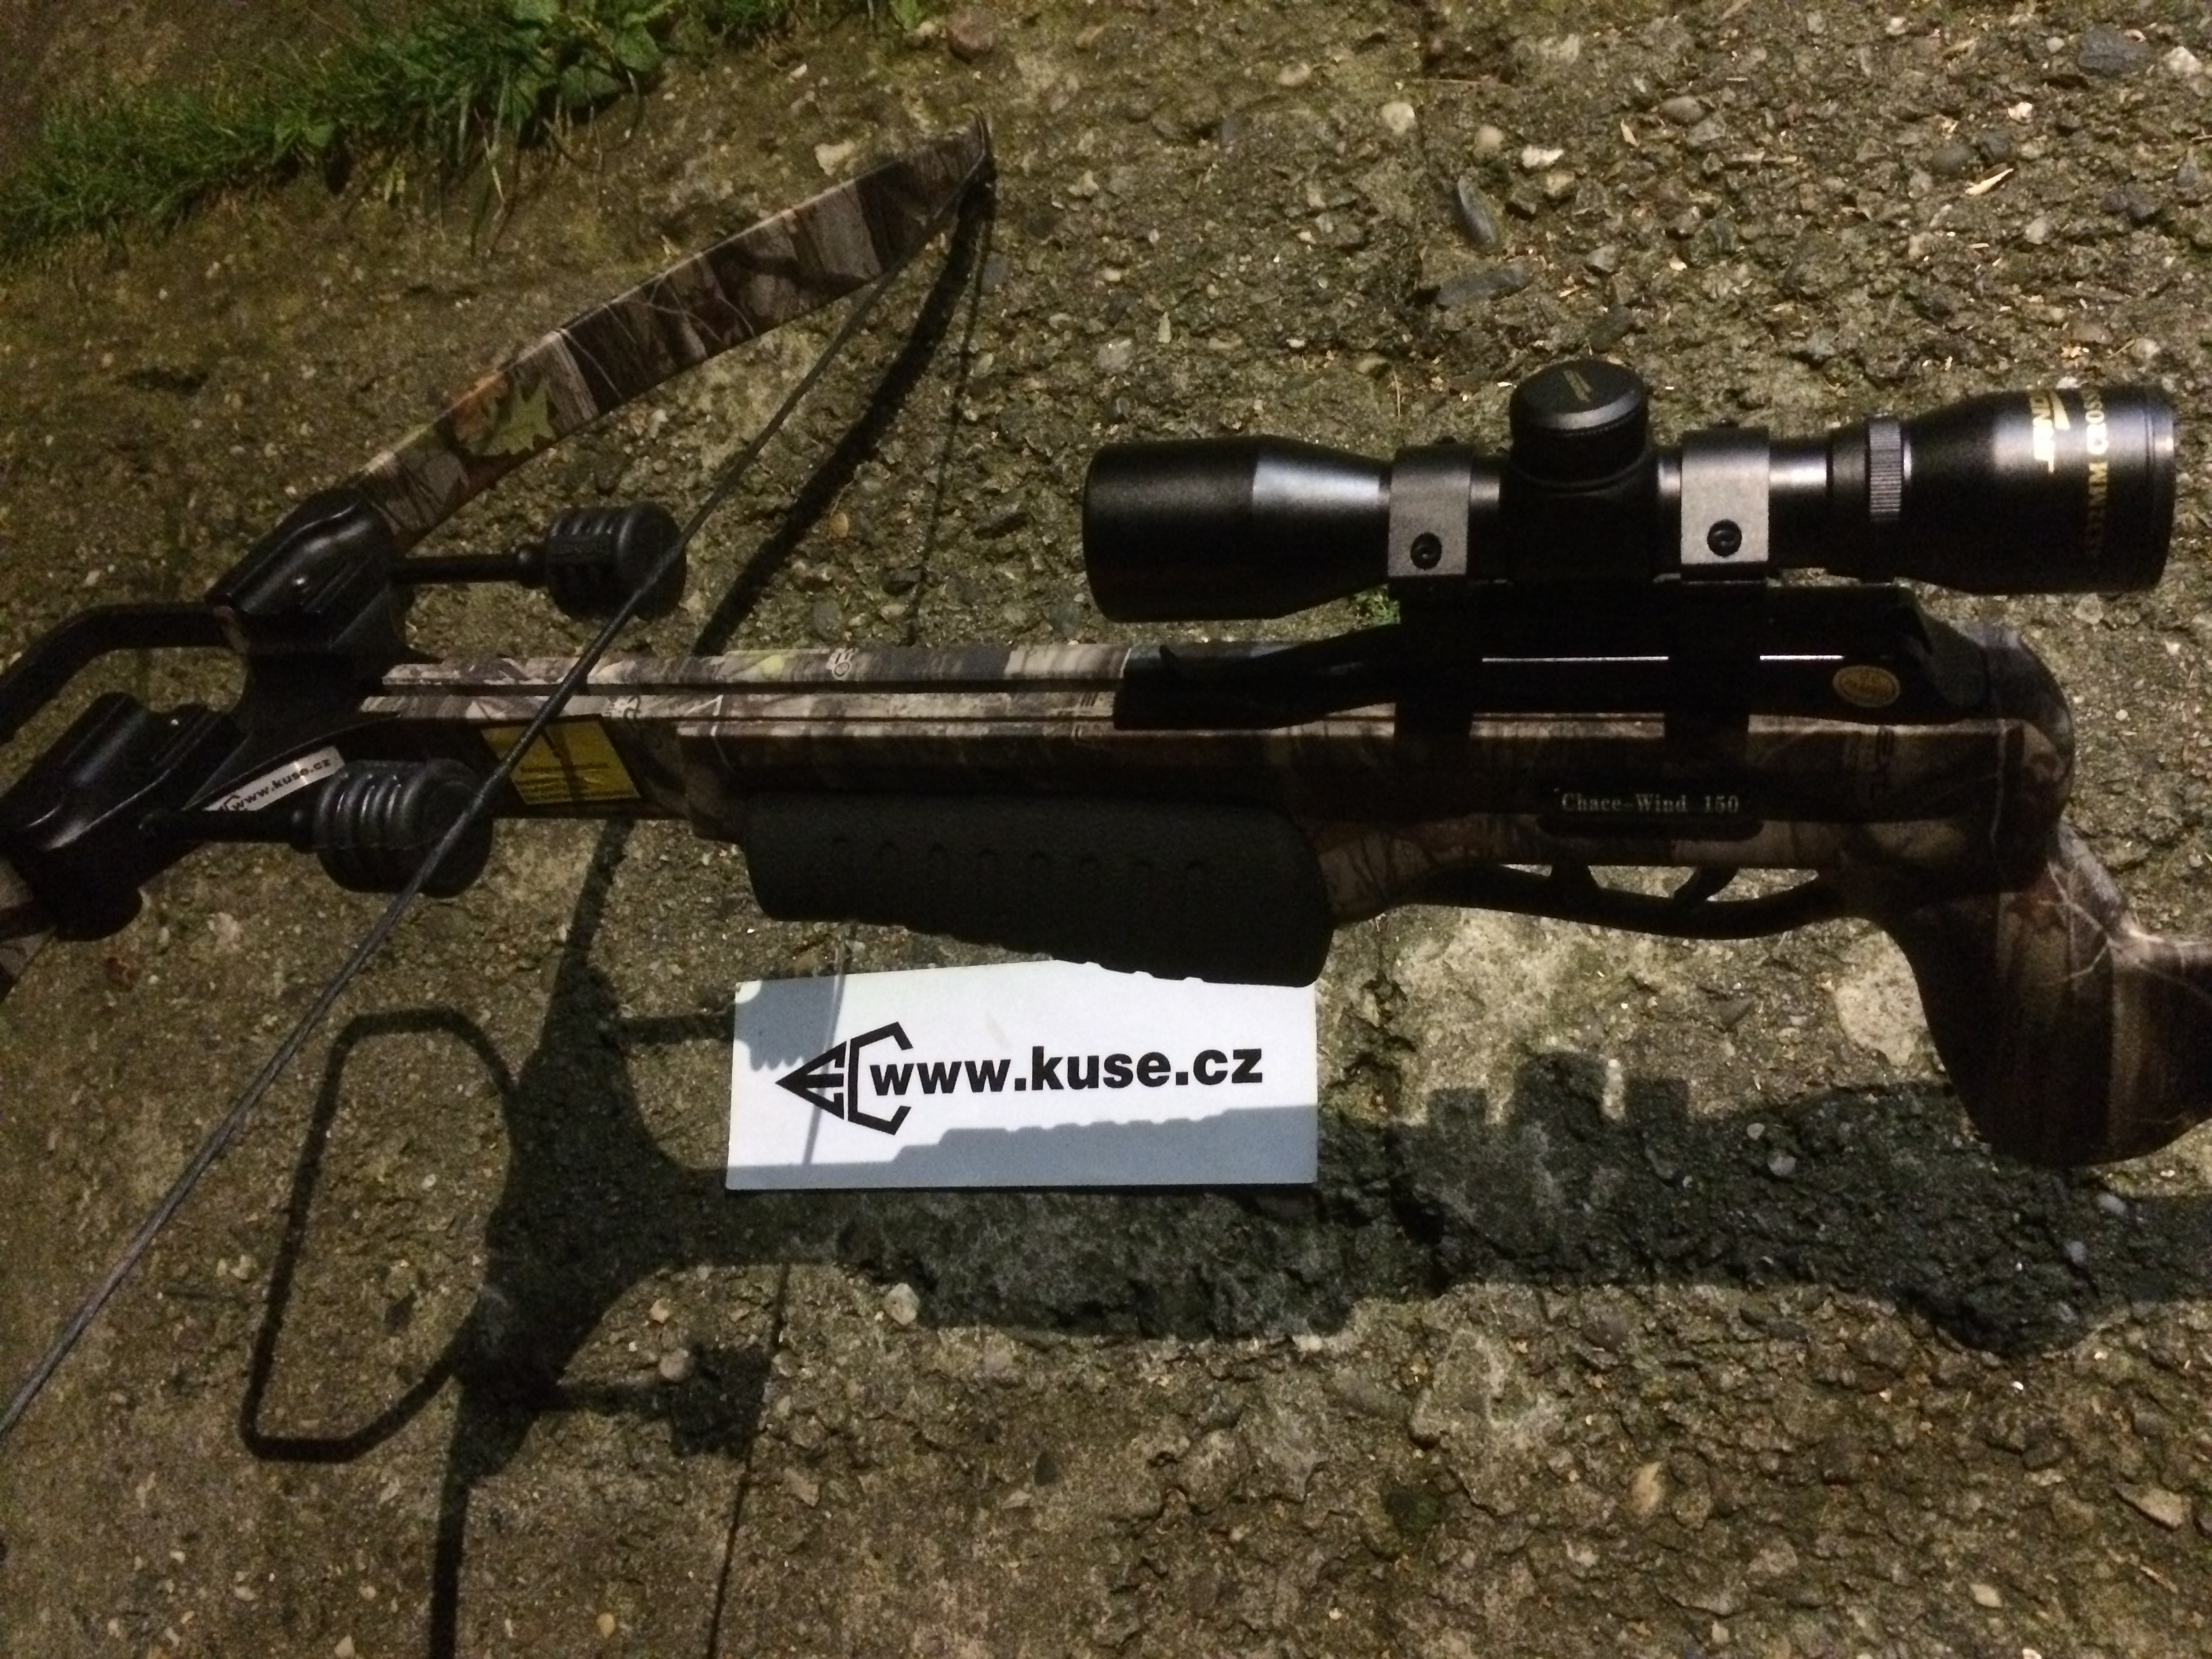 CHASE WIND 4x32 SCOPE set 270 fps s TLUMIČEM TĚTIVY